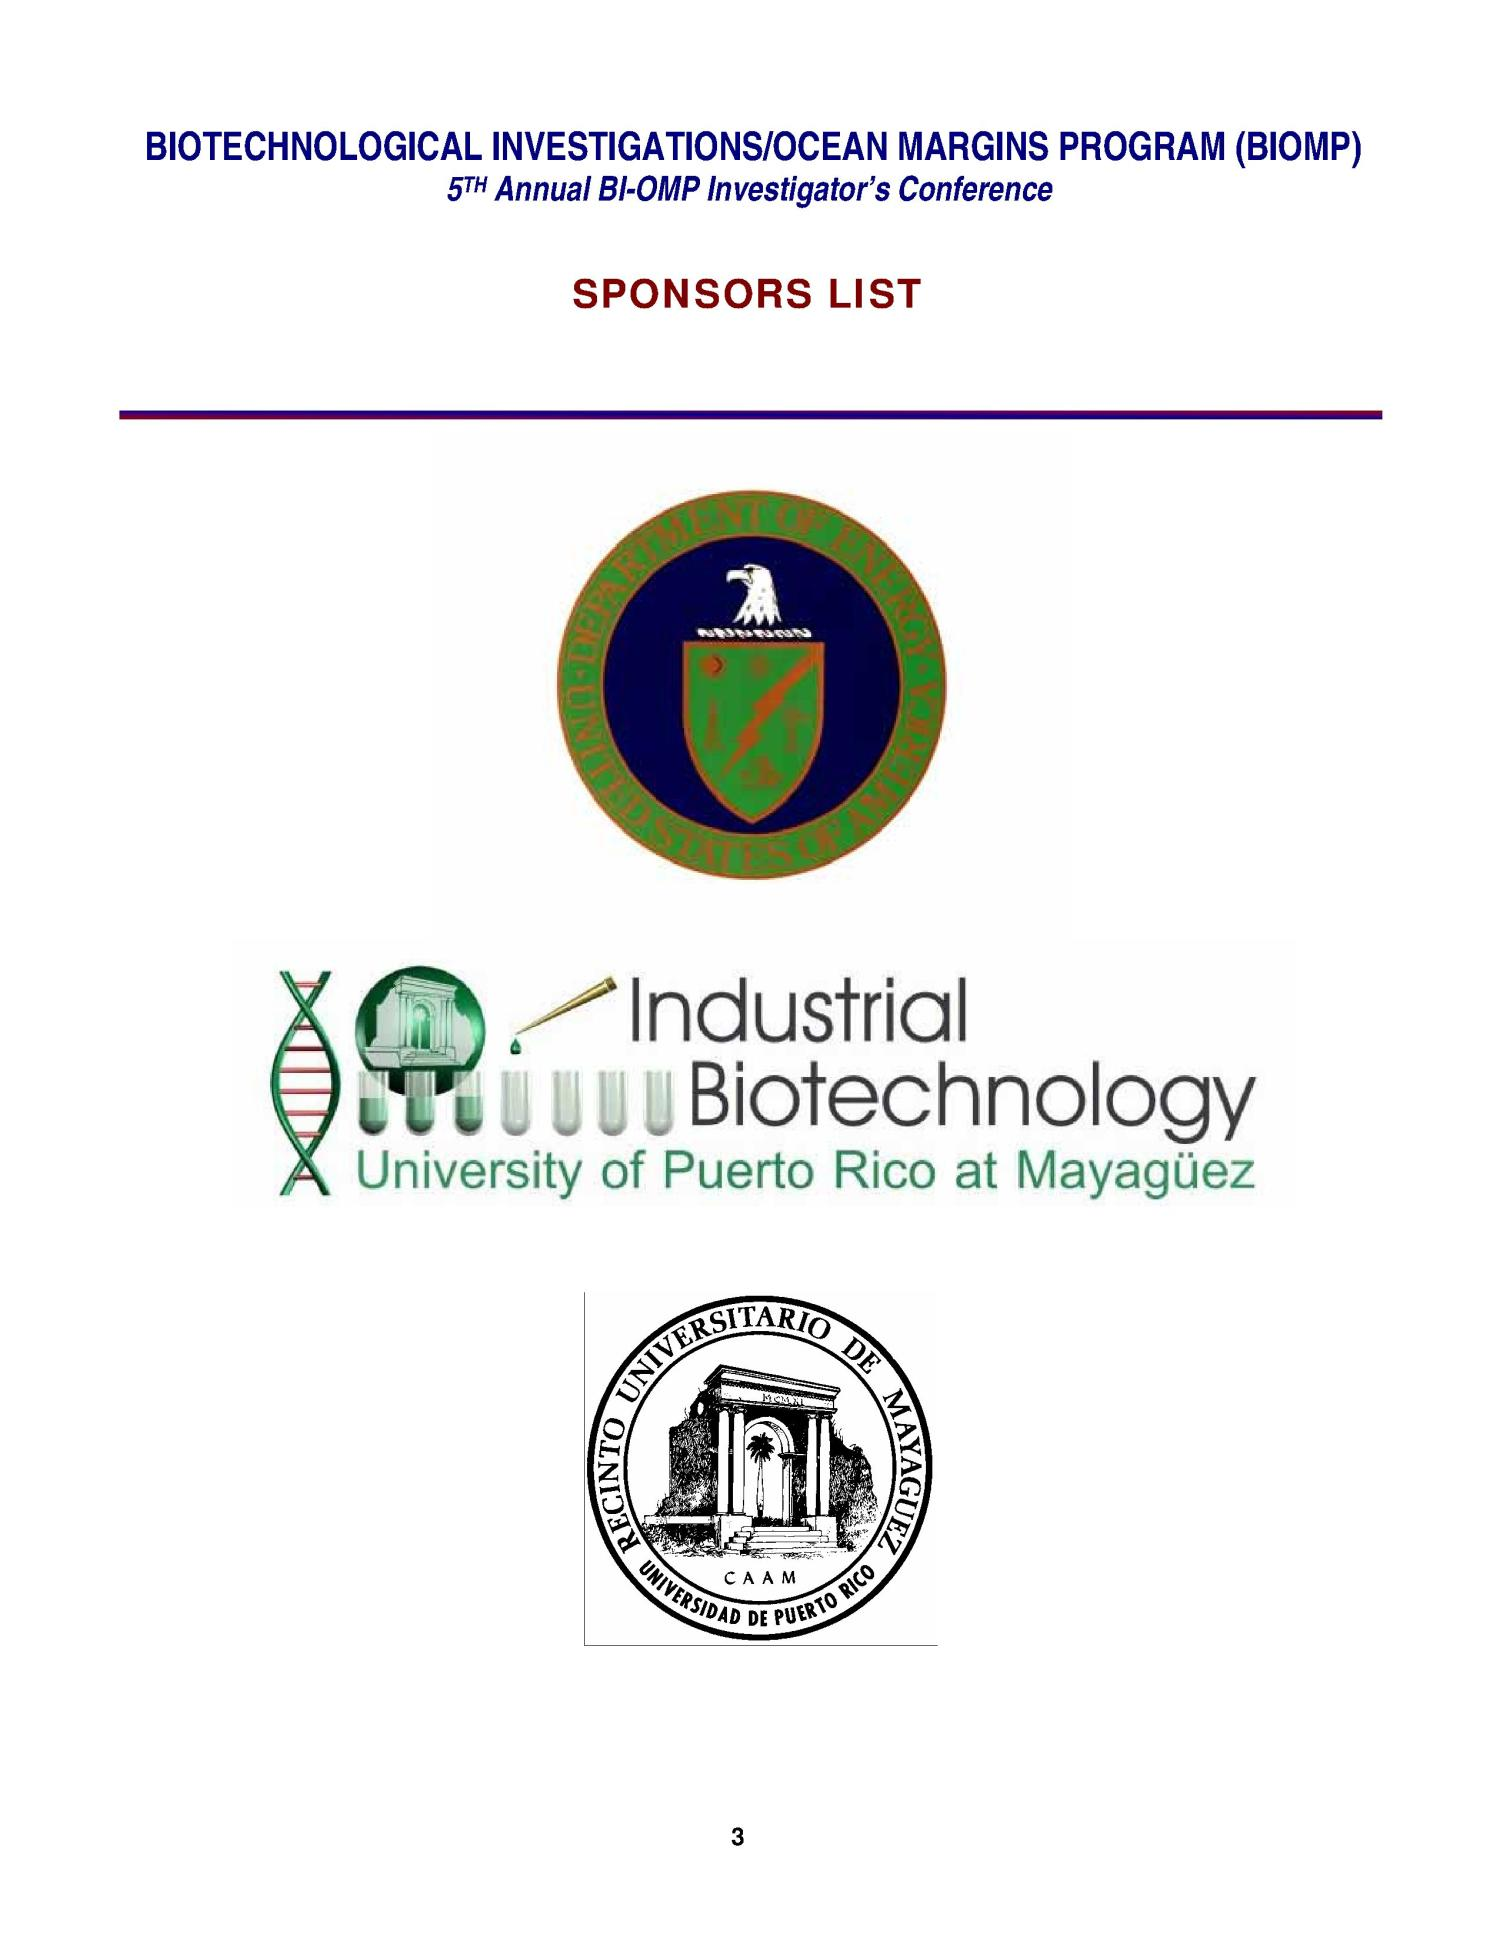 5TH BIOTECHNOLOGICAL INVESTIGATIONS OCEAN MARGINS PROGRAM                                                                                                      [Sequence #]: 3 of 24